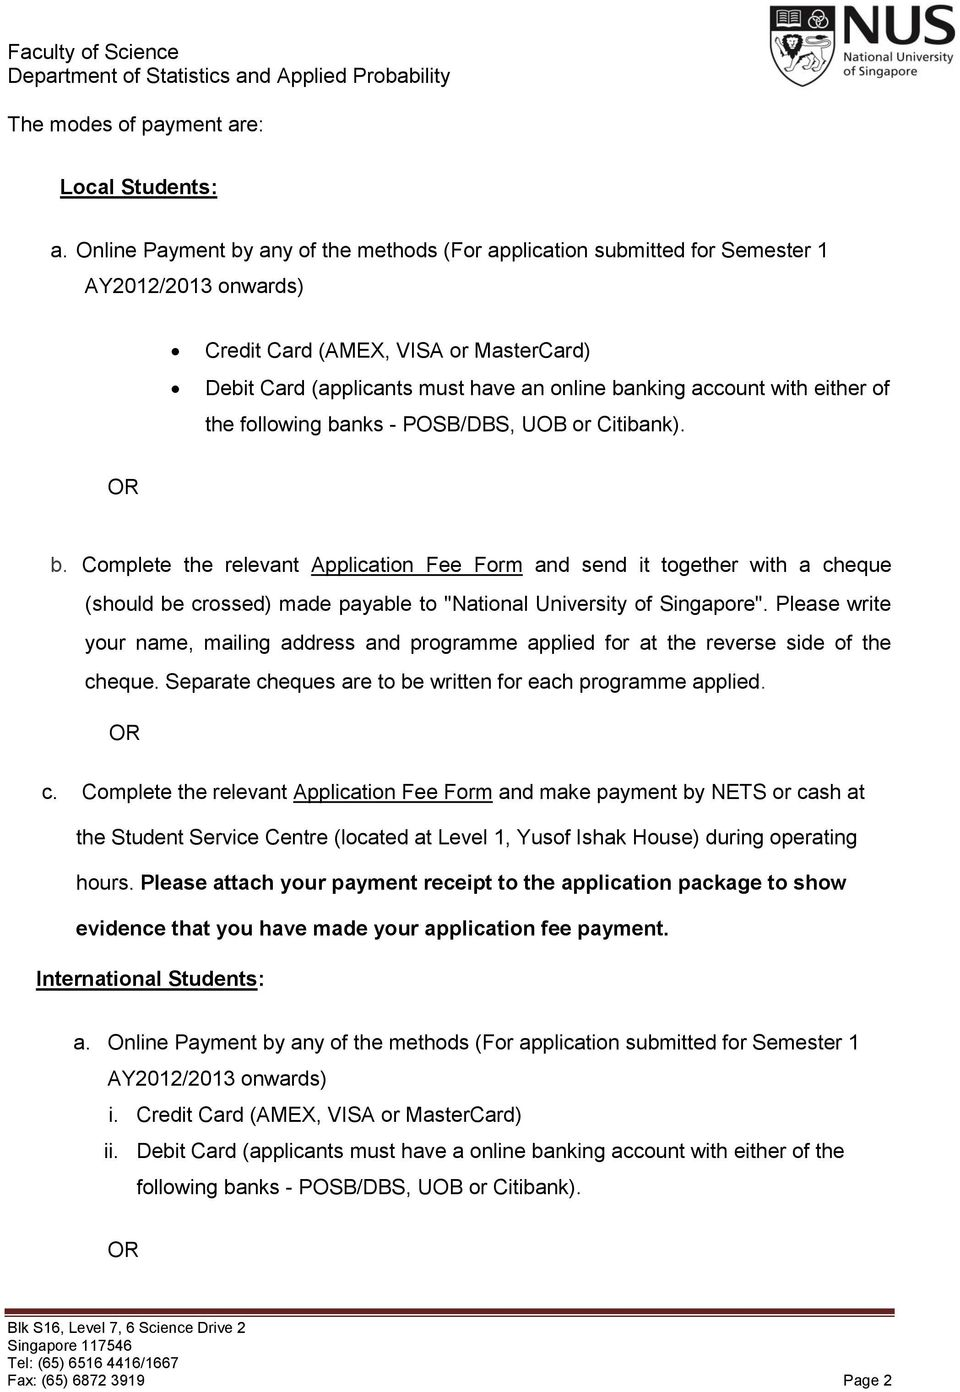 "with either of the following banks - POSB/DBS, UOB or Citibank). b. Complete the relevant Application Fee Form and send it together with a cheque (should be crossed) made payable to ""National University of Singapore""."